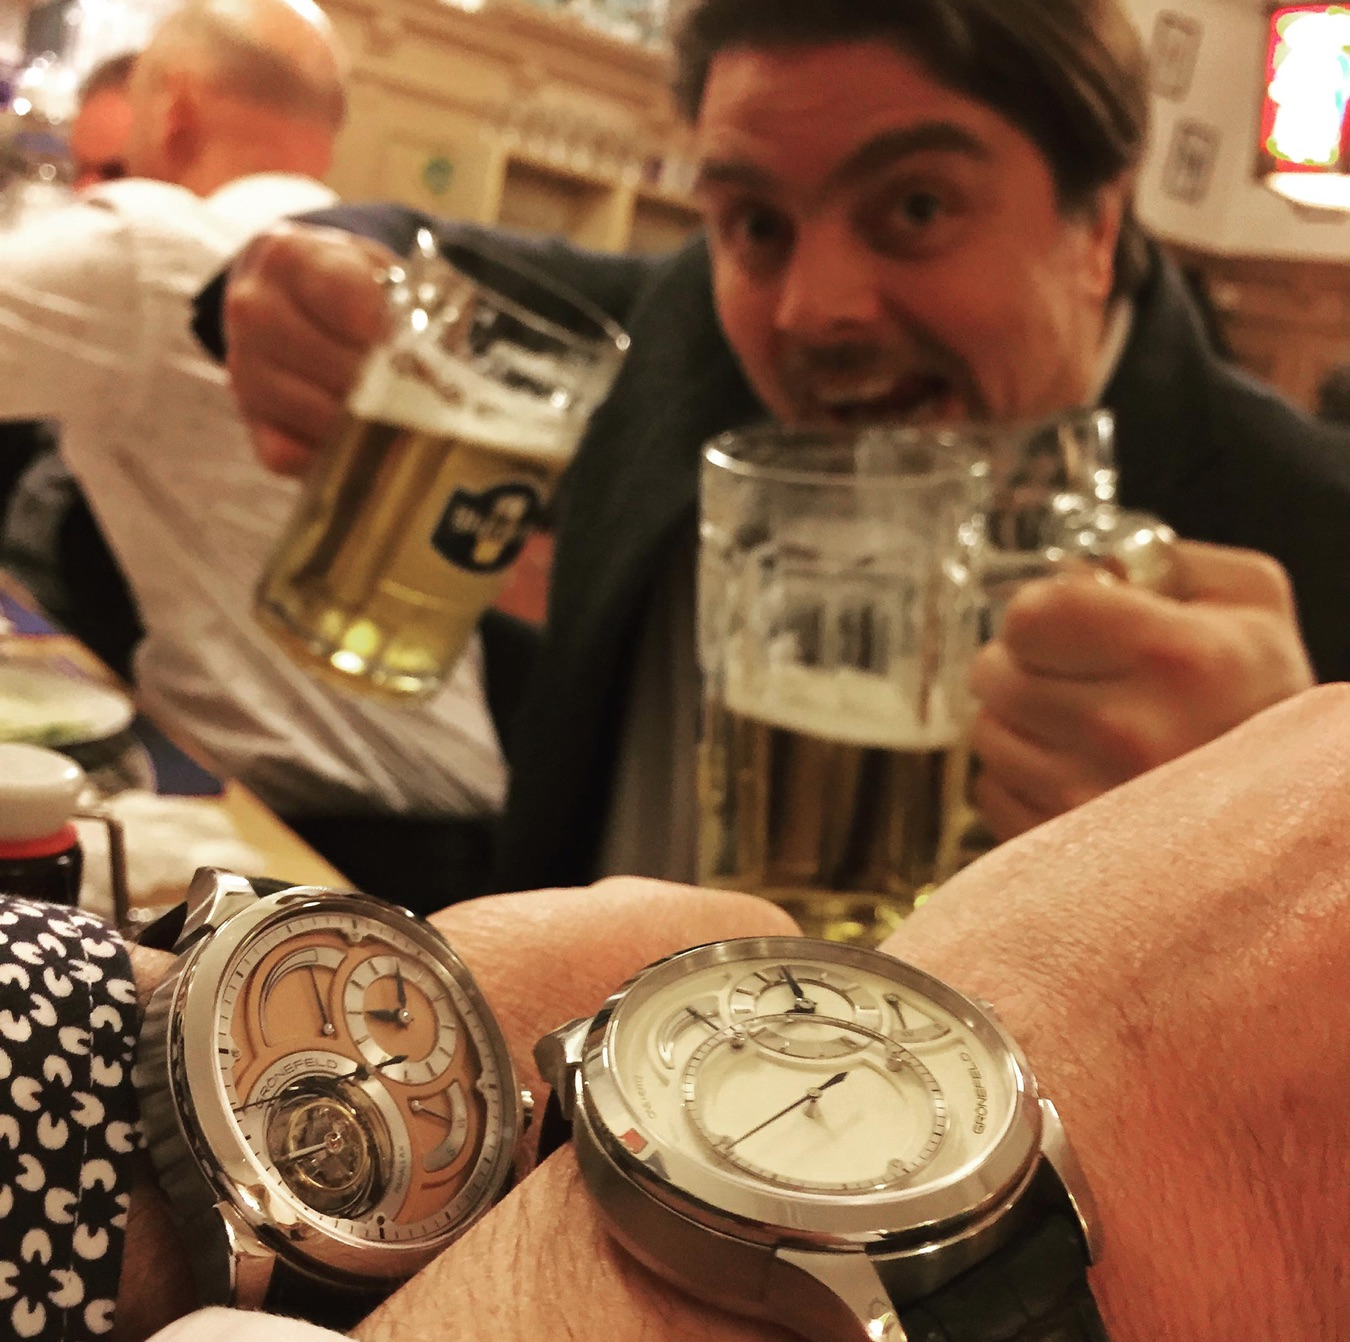 What is the 'Baselworld Schnitzel Dinner', and why does it matter?